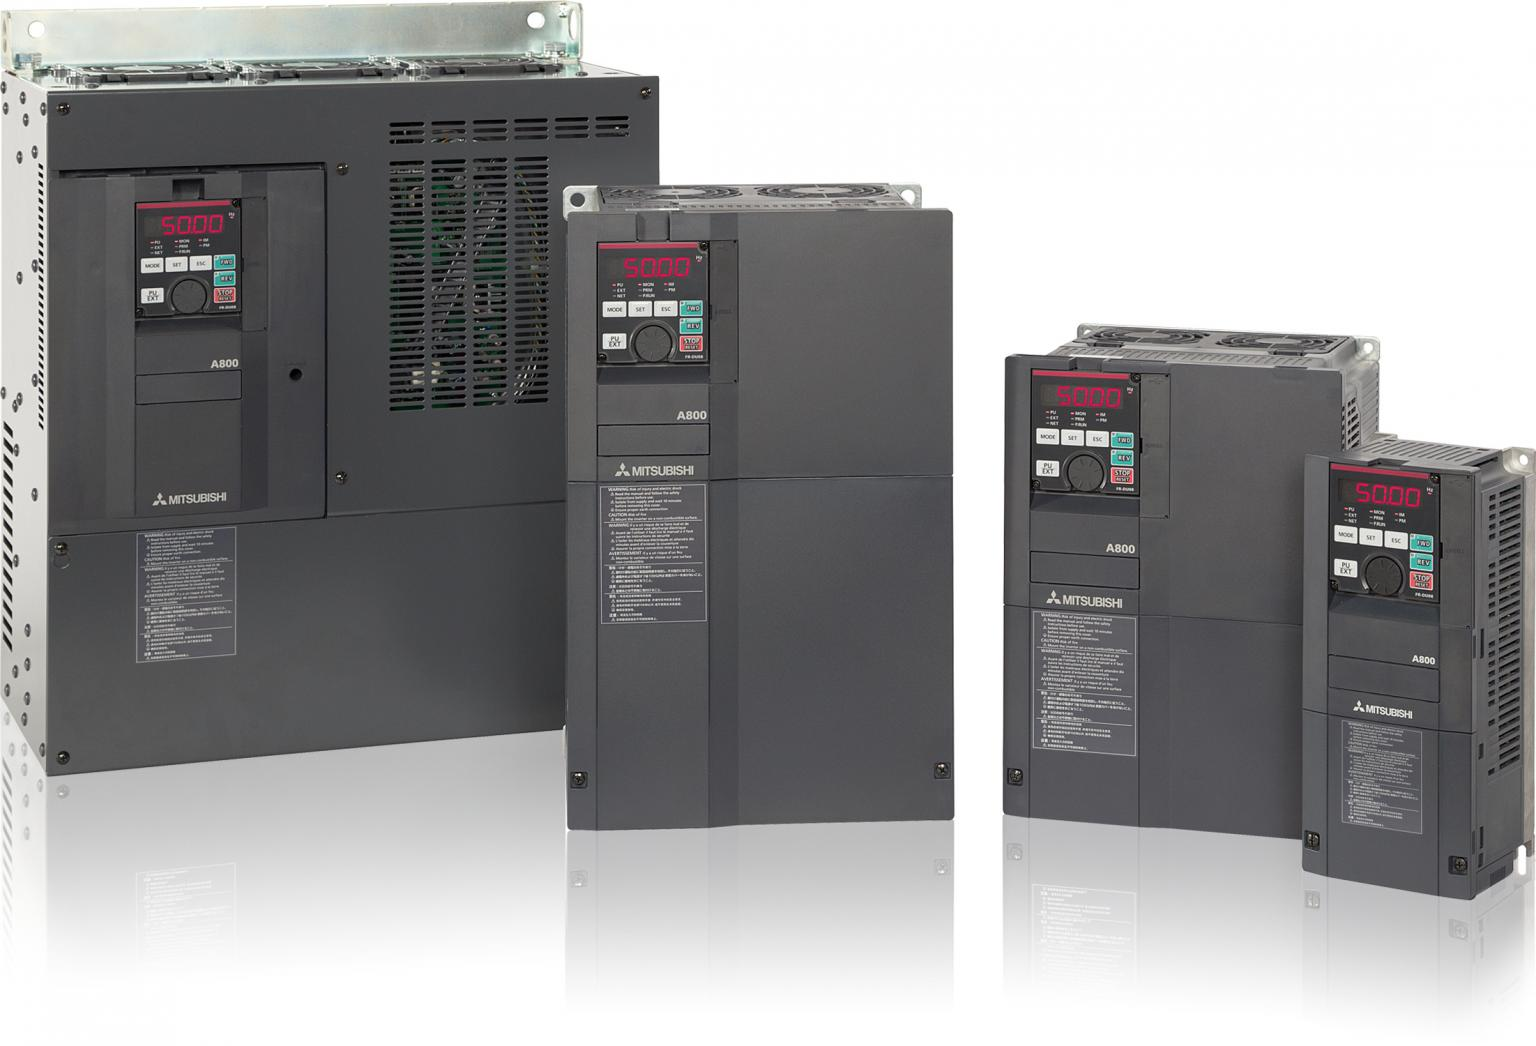 Mitsubishi Electric's new generation FR-A800 of inverter is specially designed for use in classic plant and machinery and with its maximum output and performance, increased efficiency and productivity are guaranteed. Source: Mitsubishi Electric Europe BV Automation Systems Division, UK